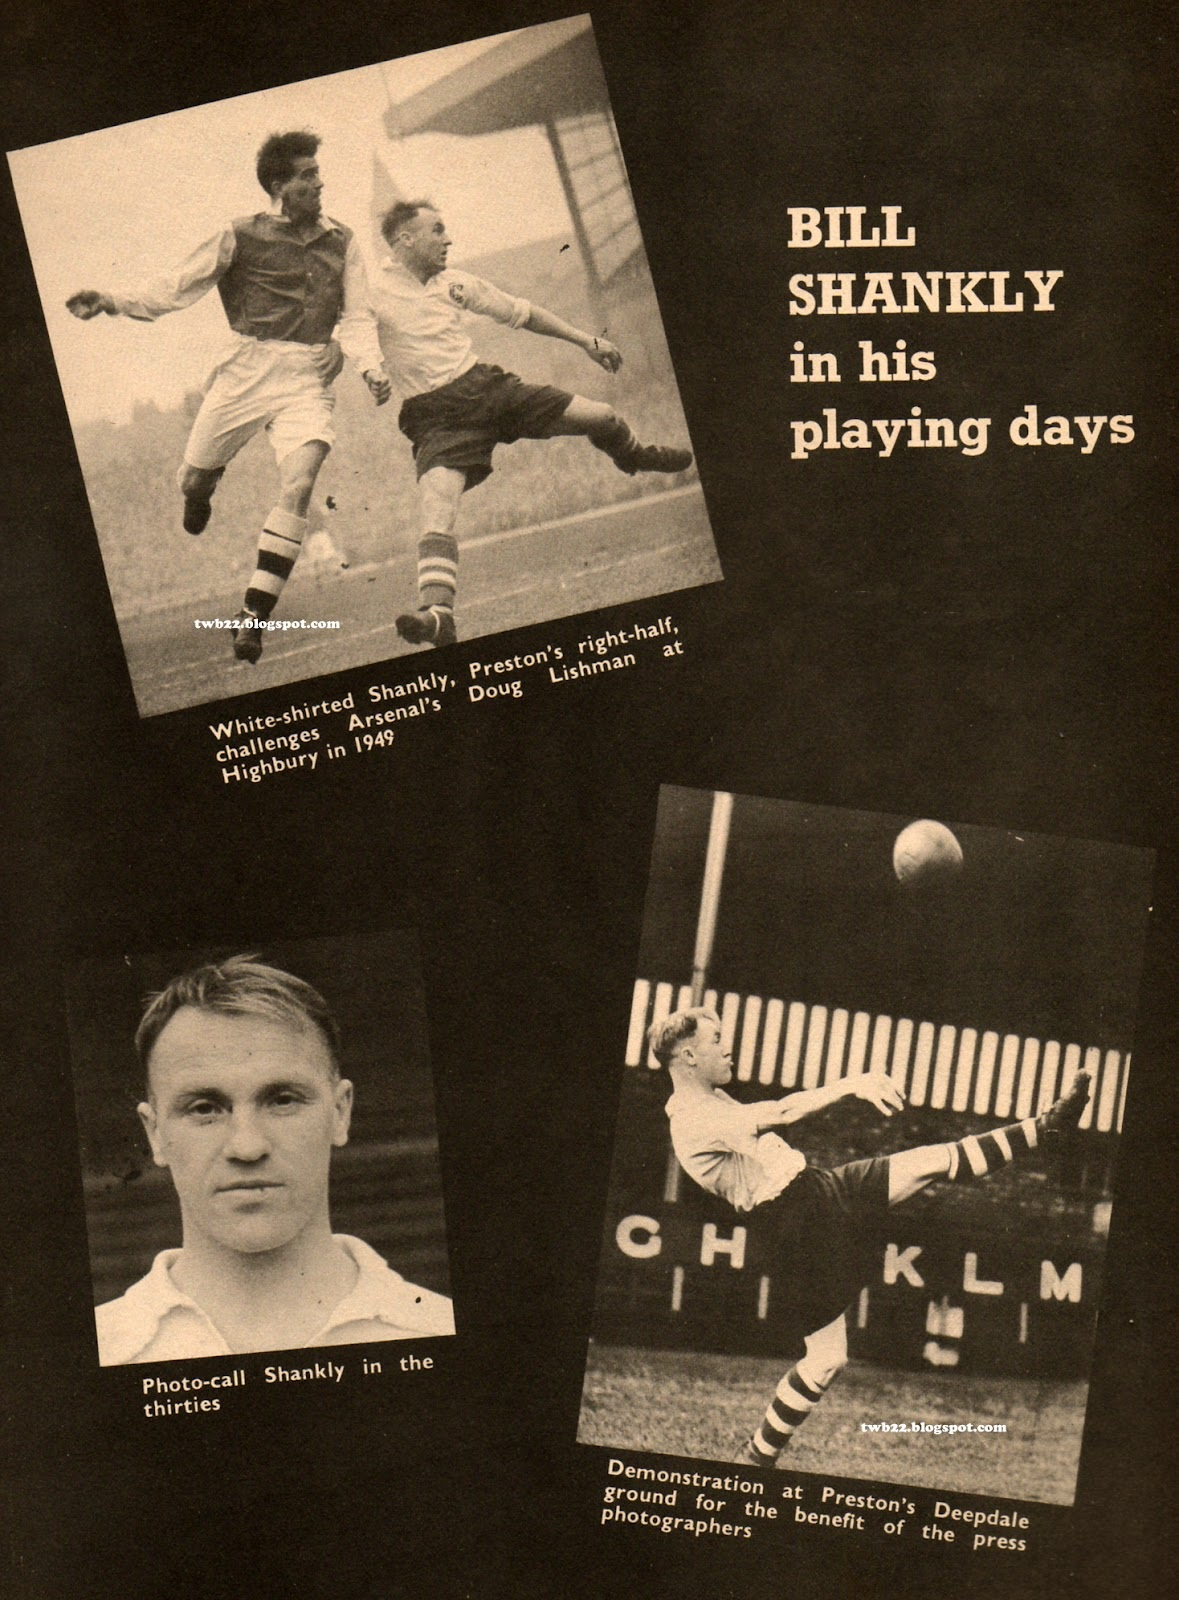 Shankly the player